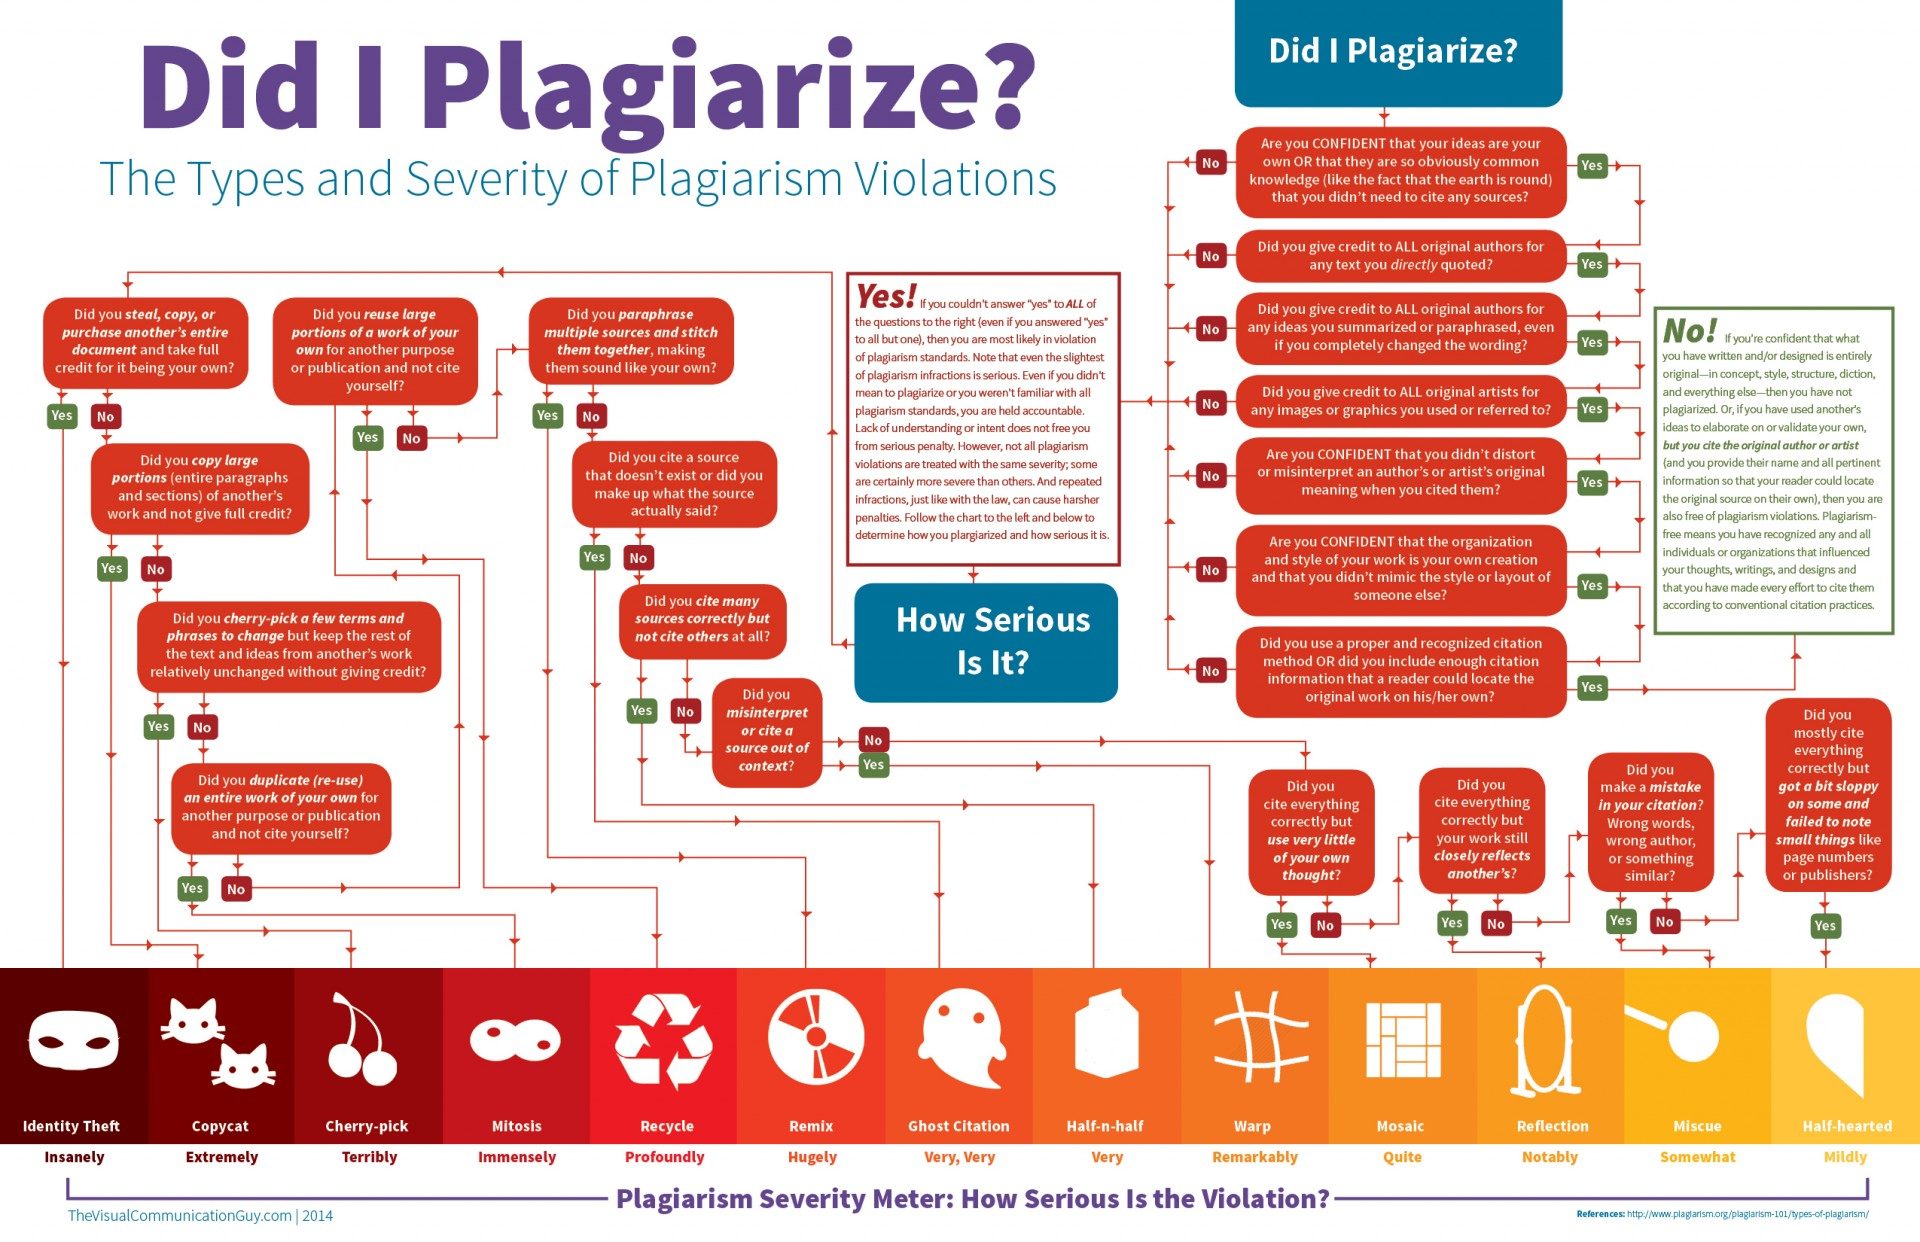 011 Check If Essay Is Plagiarized Terminology It Plagiarism To Infographic Did I Plagia Write My For Me No Free Impressive Paper Online Percentage Website Where Can 1920